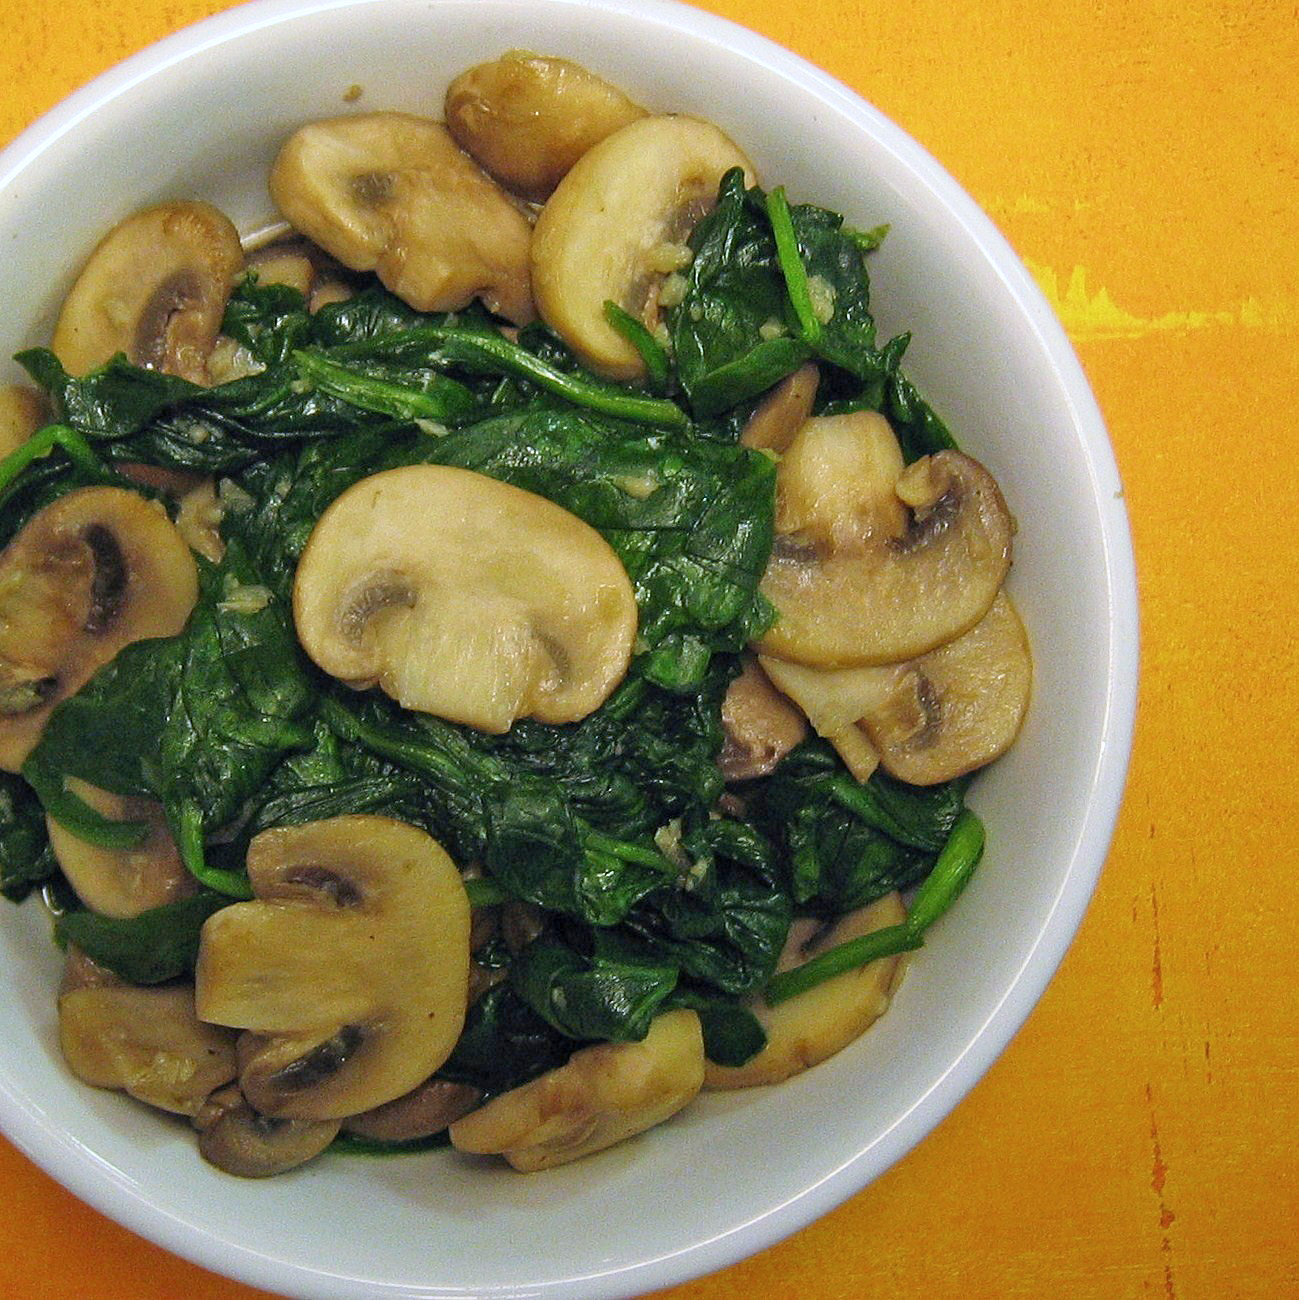 Spinach and Mushrooms Final Final 4